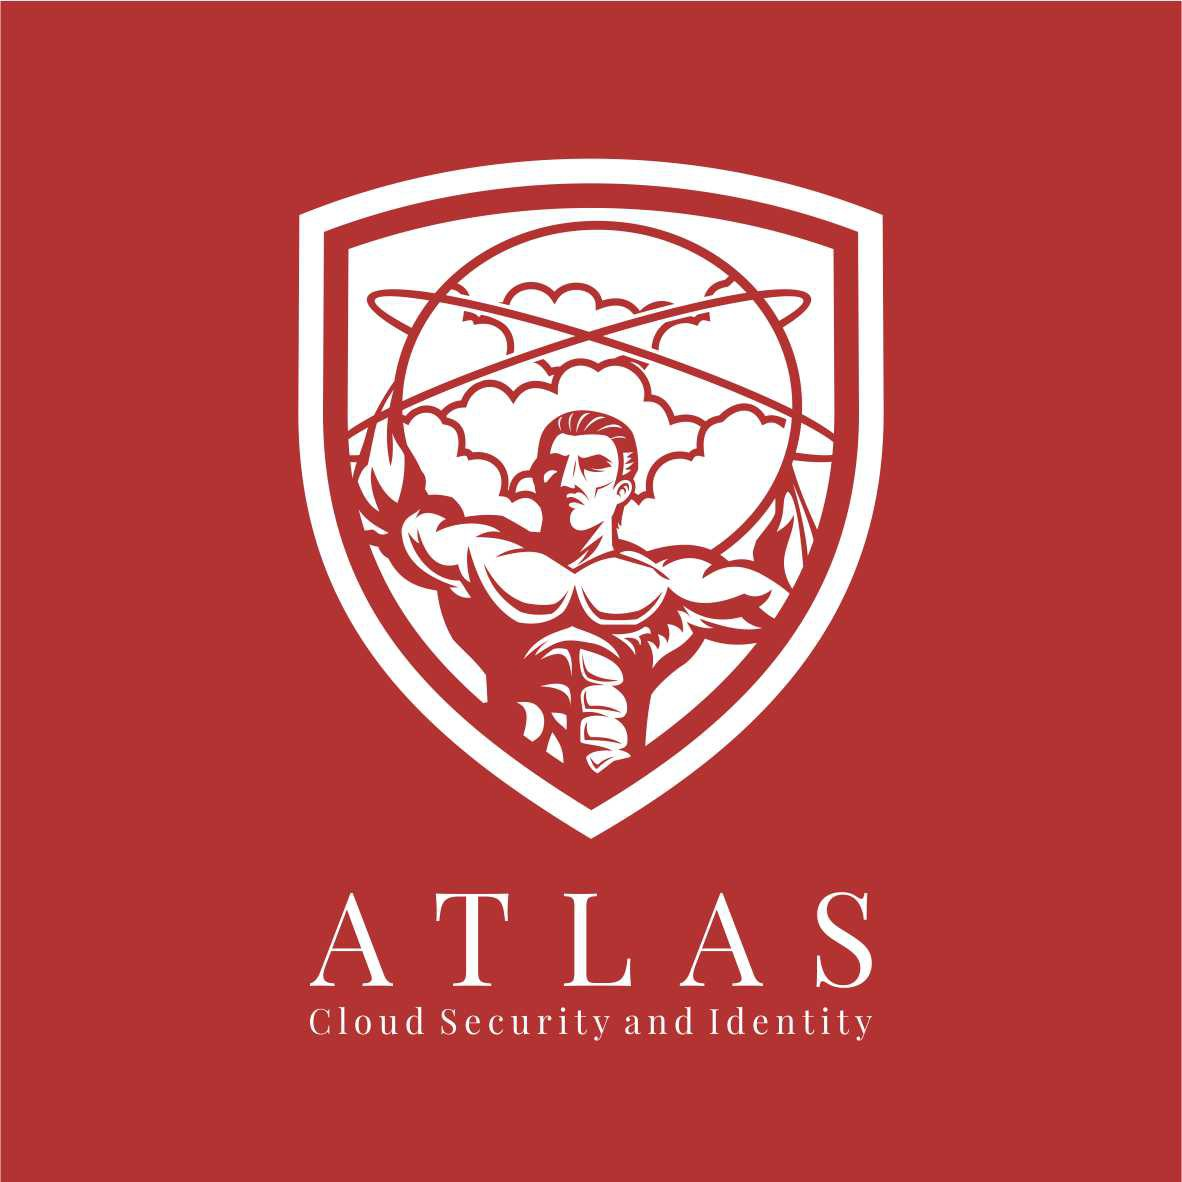 Design a powerful logo portraying Atlas carrying the weight of clouds and technology